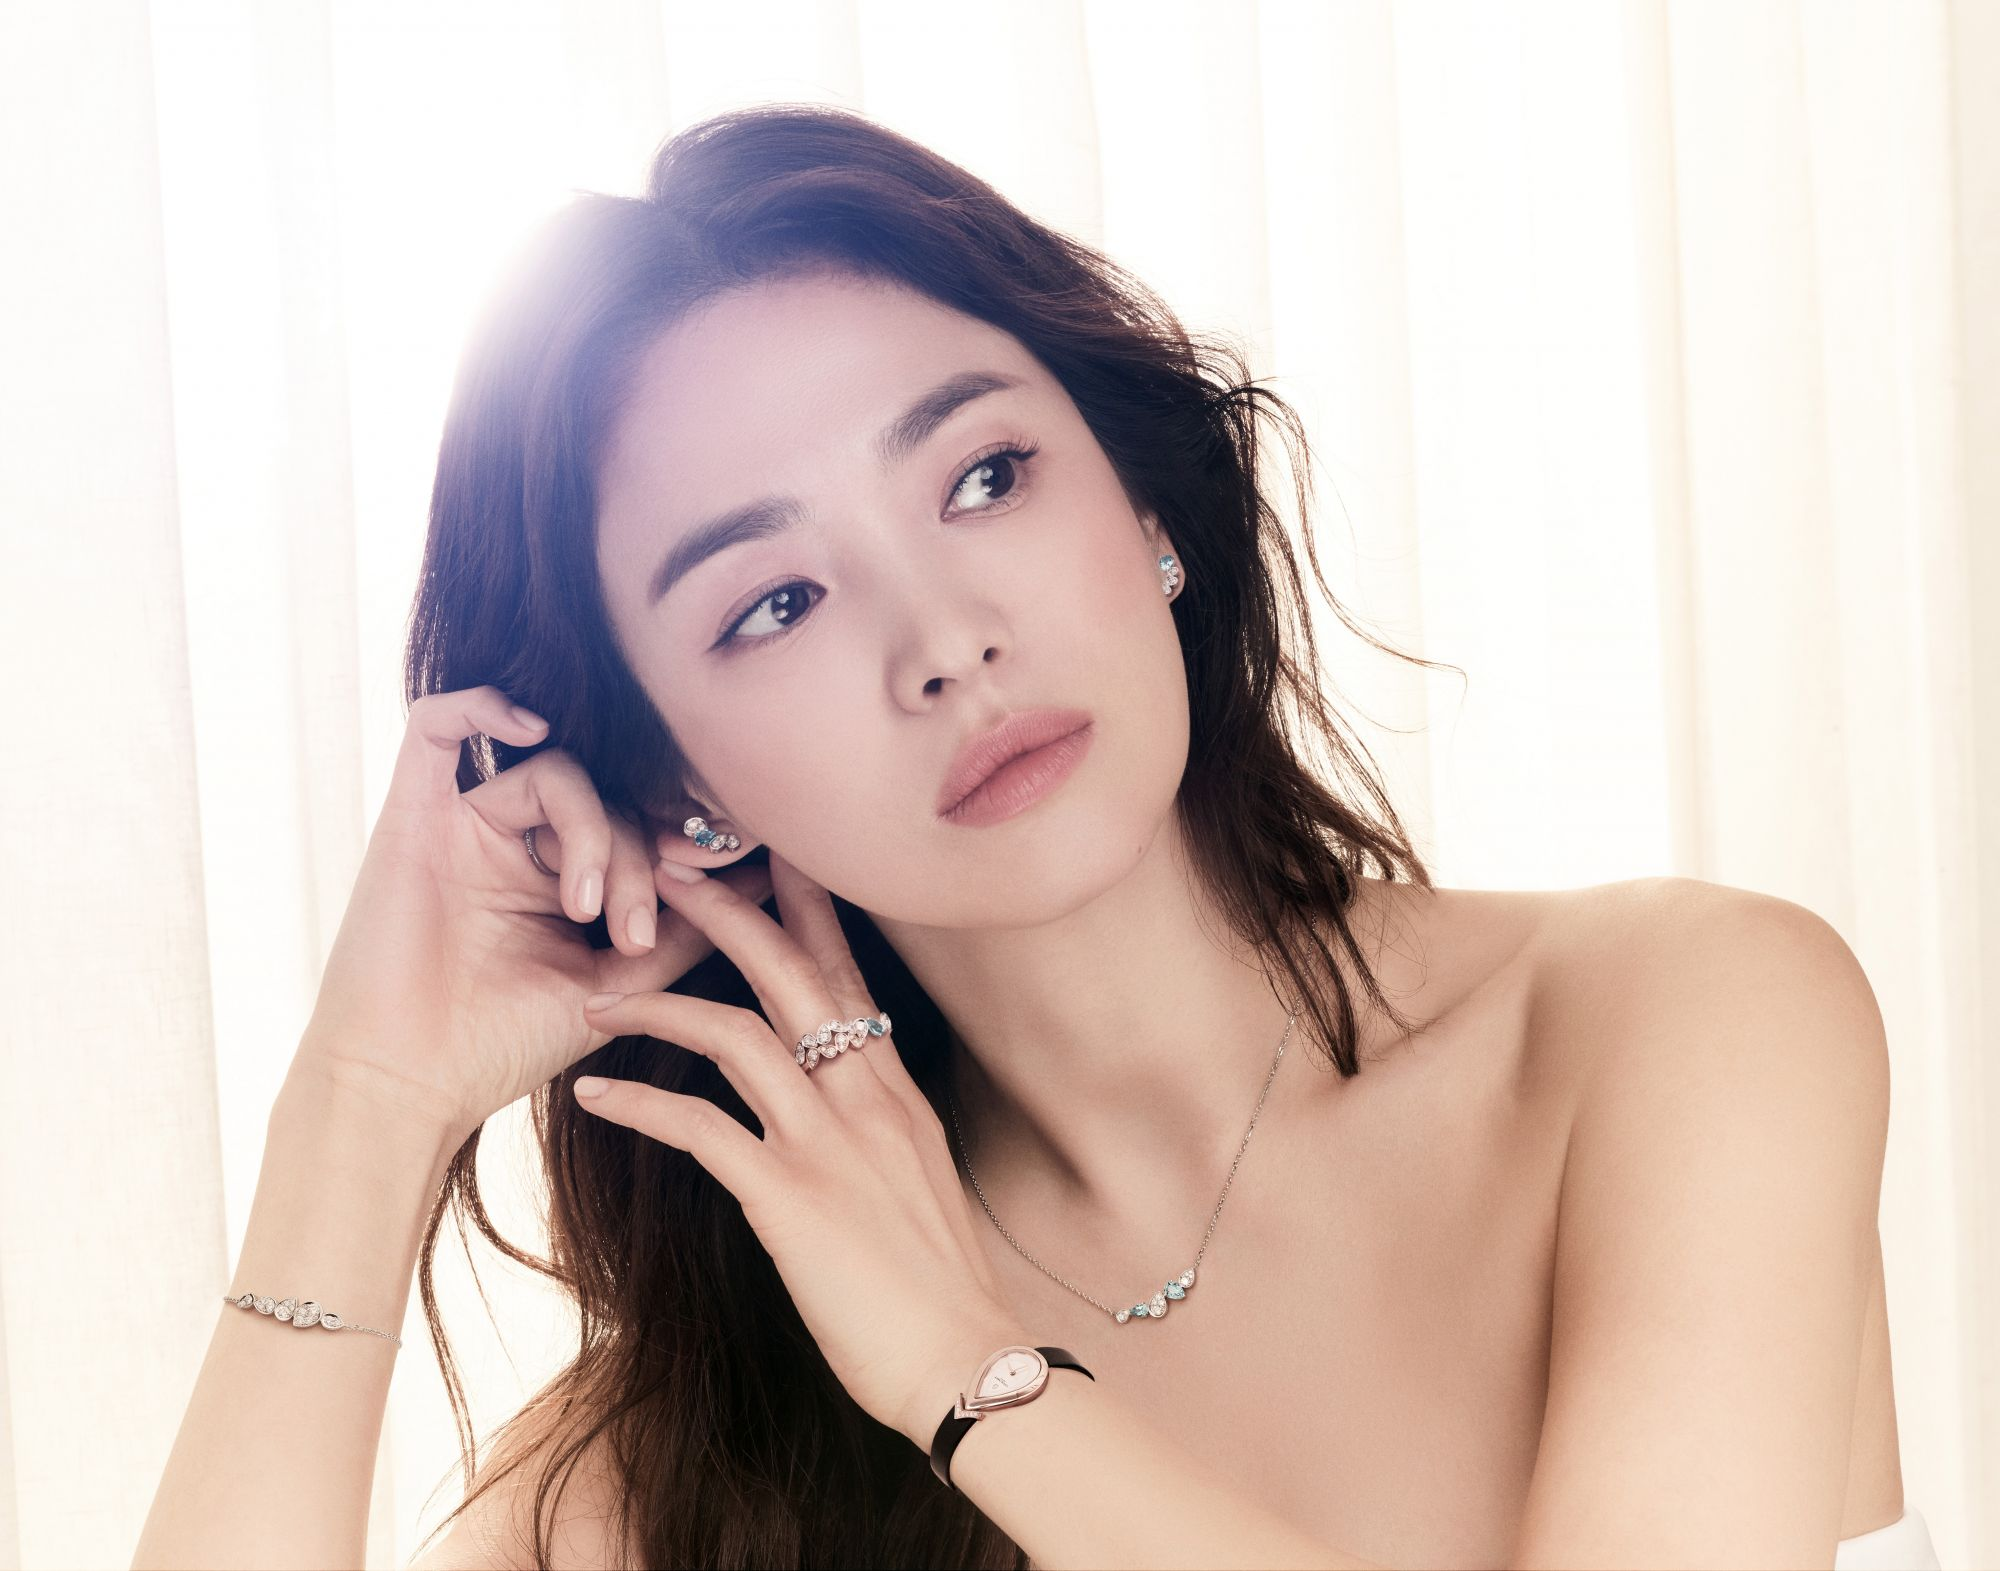 Song Hye-Kyo For Chaumet: Why She Identifies With Empress Joséphine